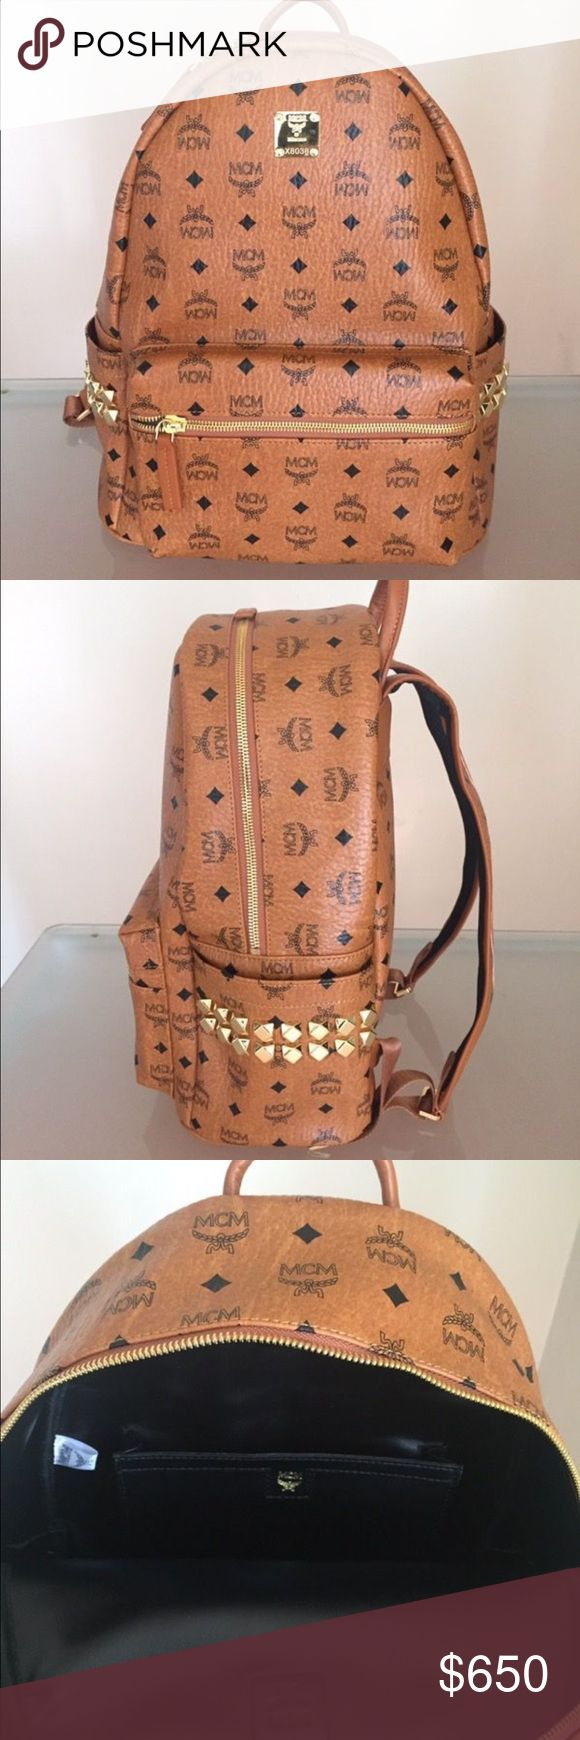 MCM Backpack Brown Cognac medium MCM bag authentic Authenticity Guaranteed. You can buy through posh but if it cost to much. I'm will sell for a WAY cheaper price if you offer somewhere else like 🅿🅿 or VENM0 that doesn't take a high percentage. ALSO ACCEPTING TRADES. TEXT ME ASAP!! (310) 955-4570 MCM Bags Backpacks